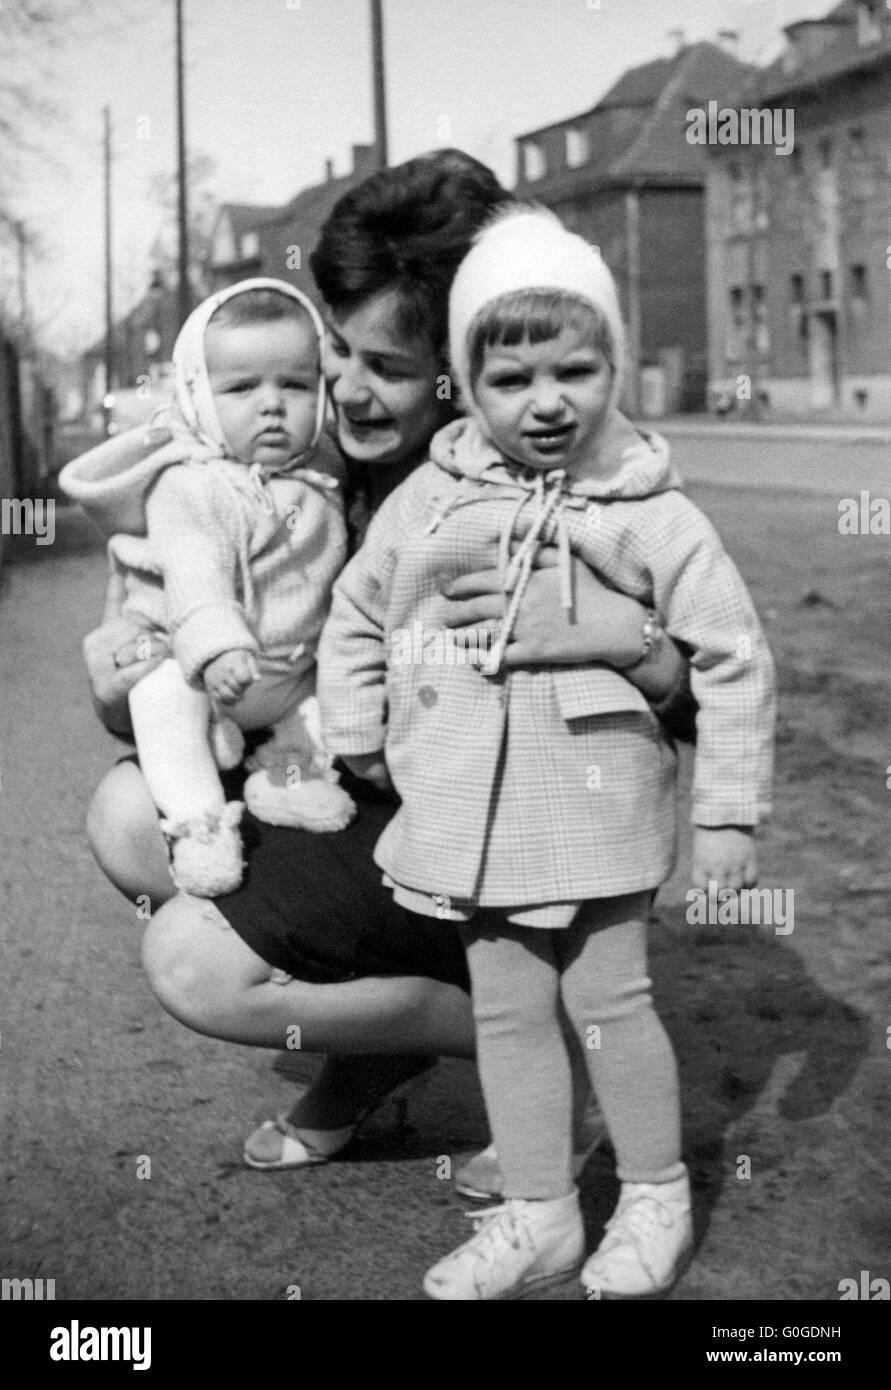 Sixties, black and white photo, people, young woman 20 to 25 years cowers holding a boy 1 year and a girl 2 to 3 - Stock Image